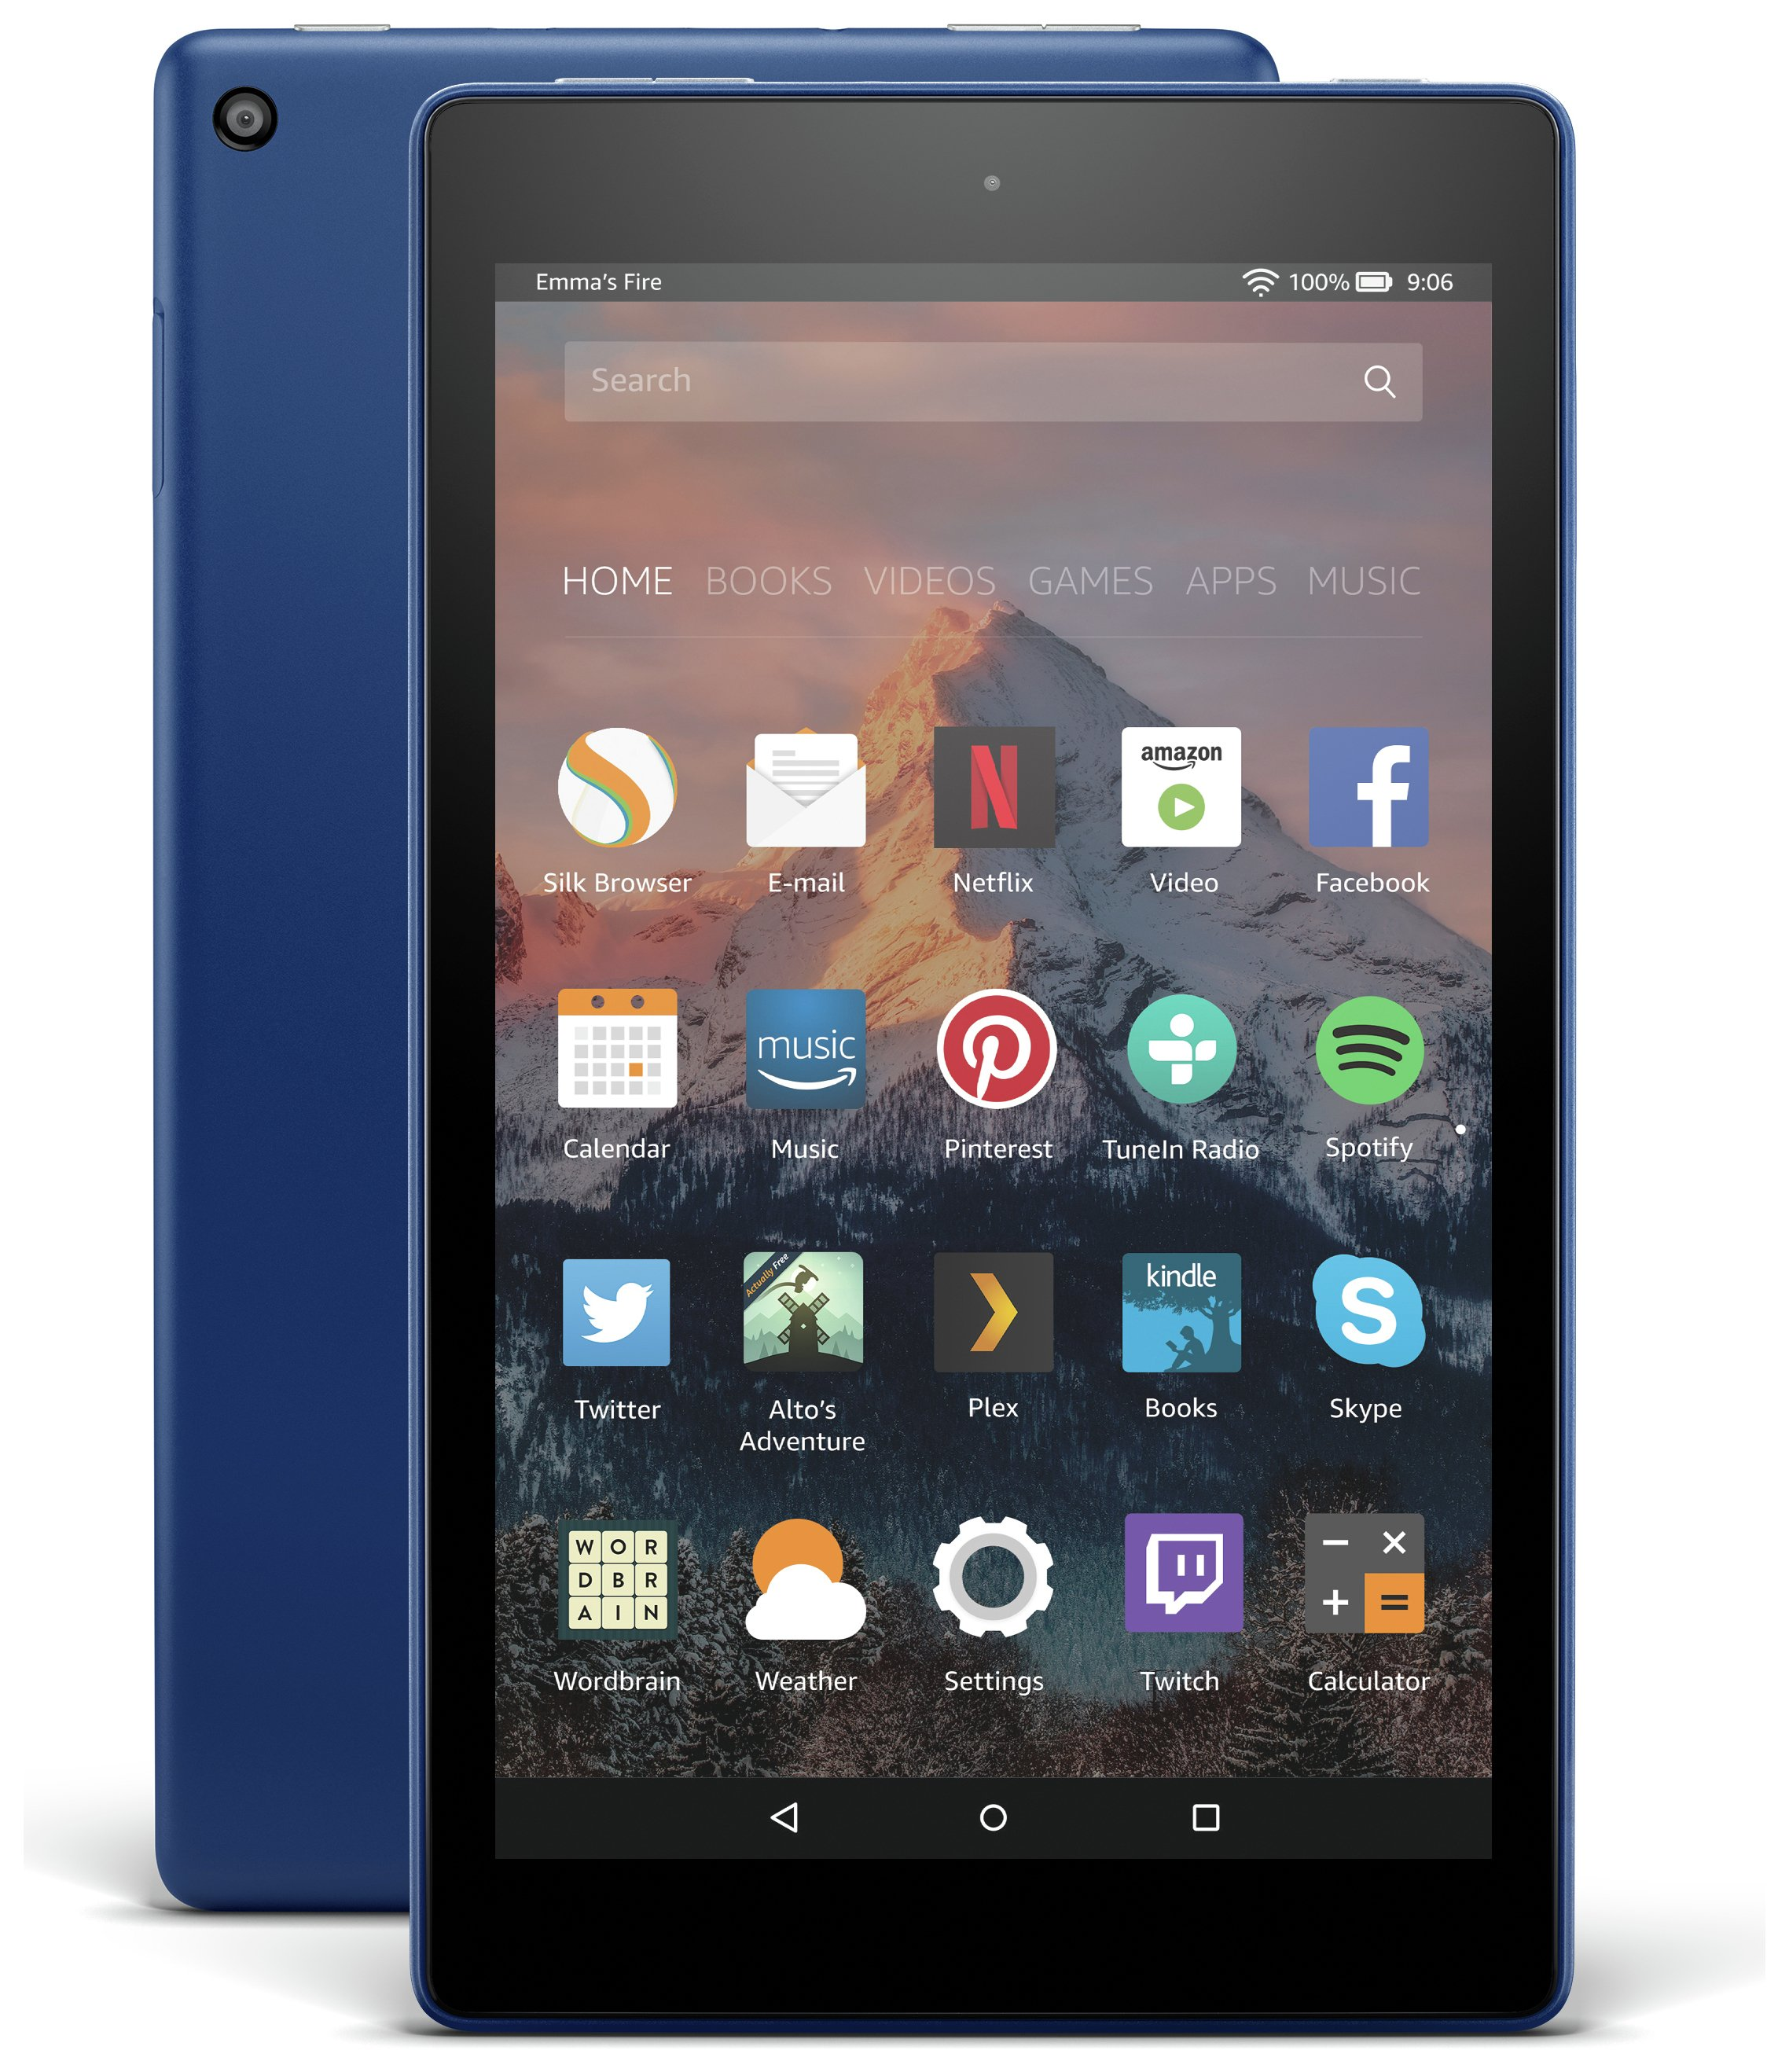 amazon-fire-8-hd-alexa-8-inch-32-tablet-marine-blue